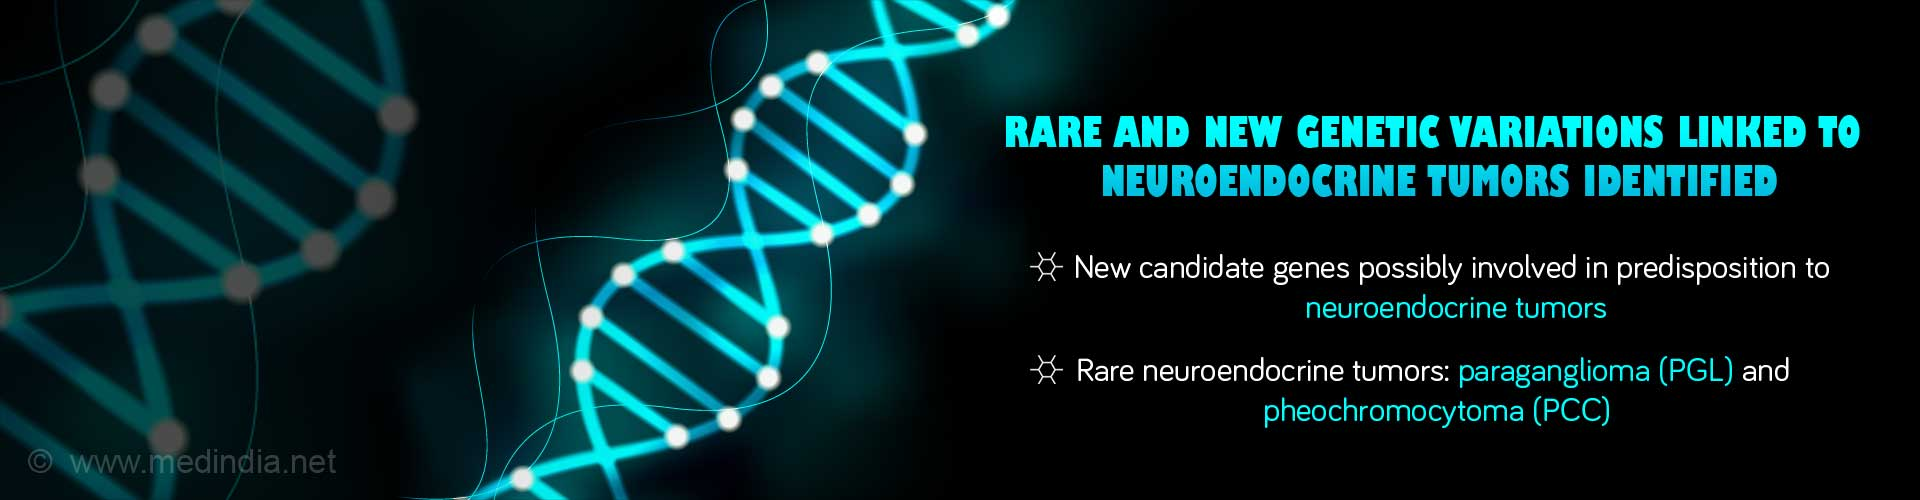 Rare and New Variations Linked to Neuroendocrine Tumors Identified